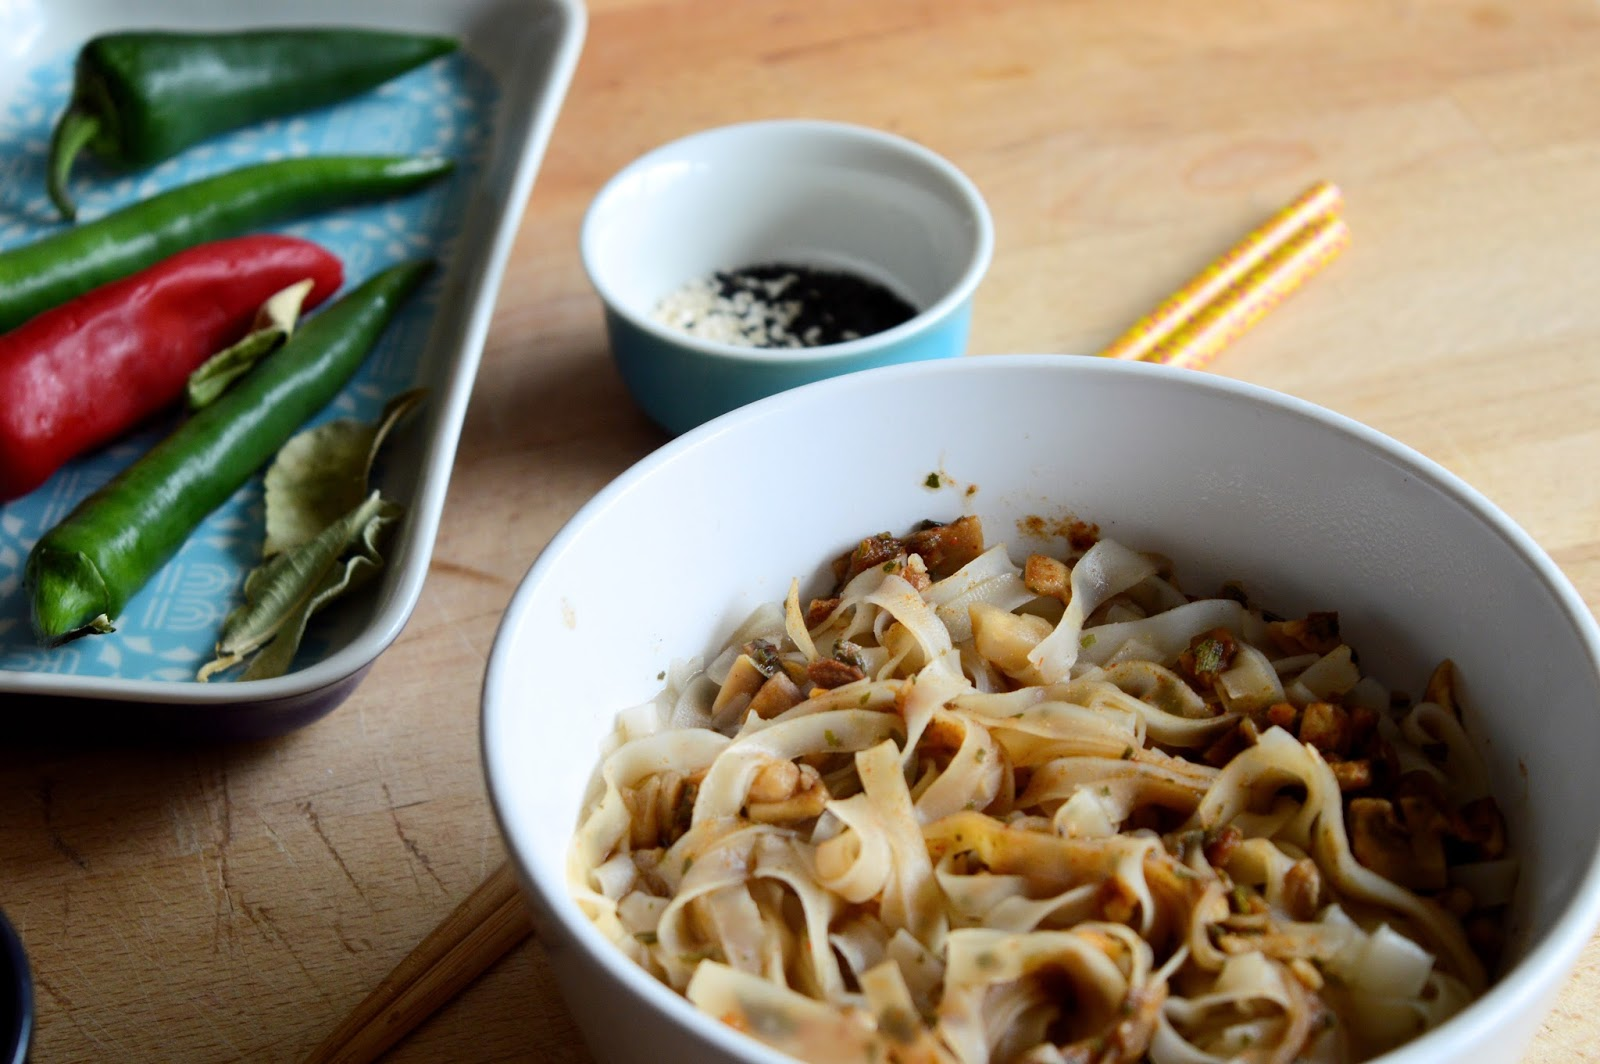 Mr Lees Noodles review, Dragon Fire Mushroom, healthy lunch ideas, UK food blogs